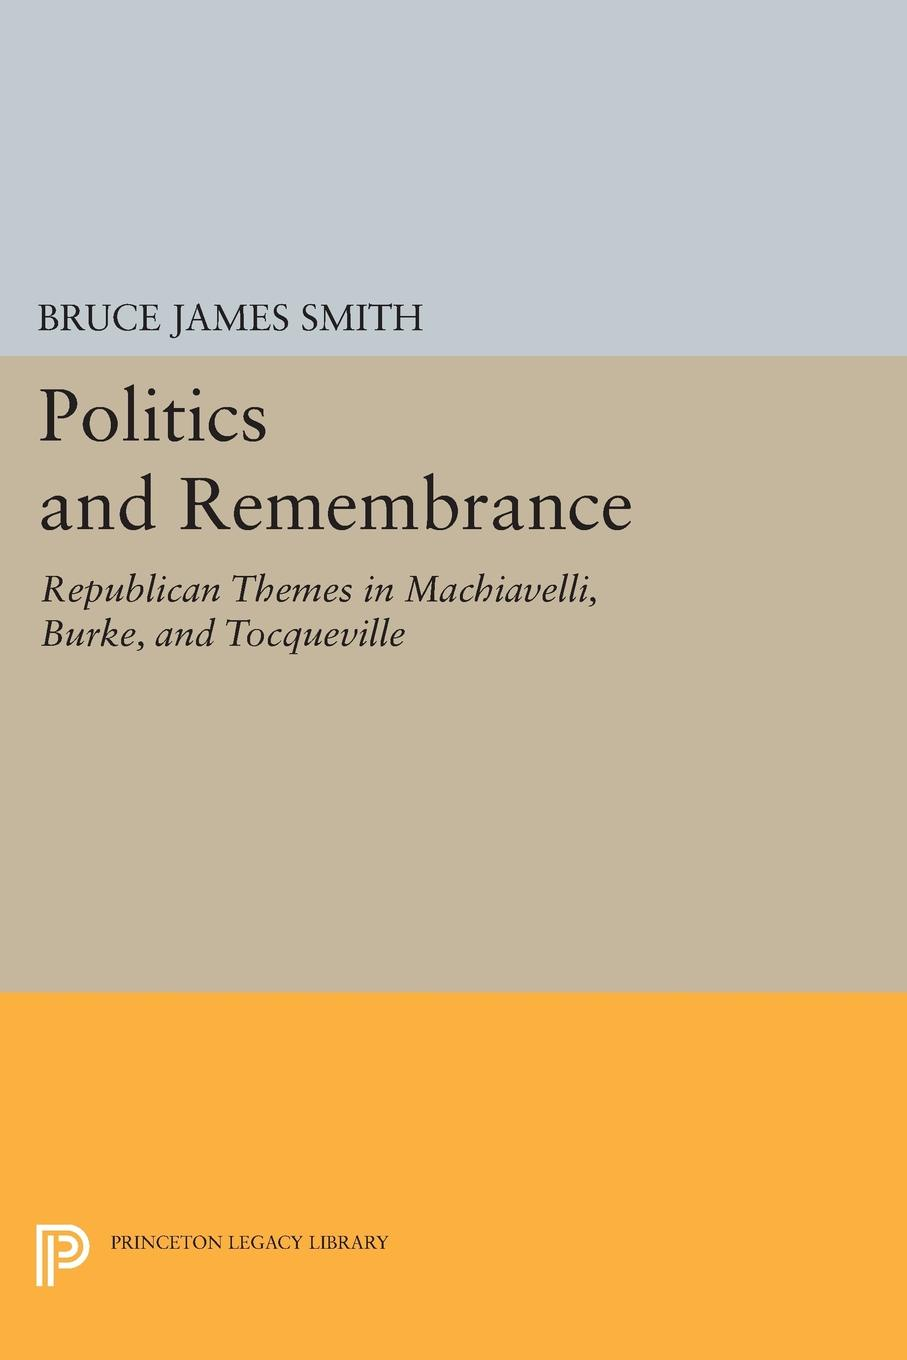 Politics and Remembrance. Republican Themes in Machiavelli, Burke, and Tocqueville